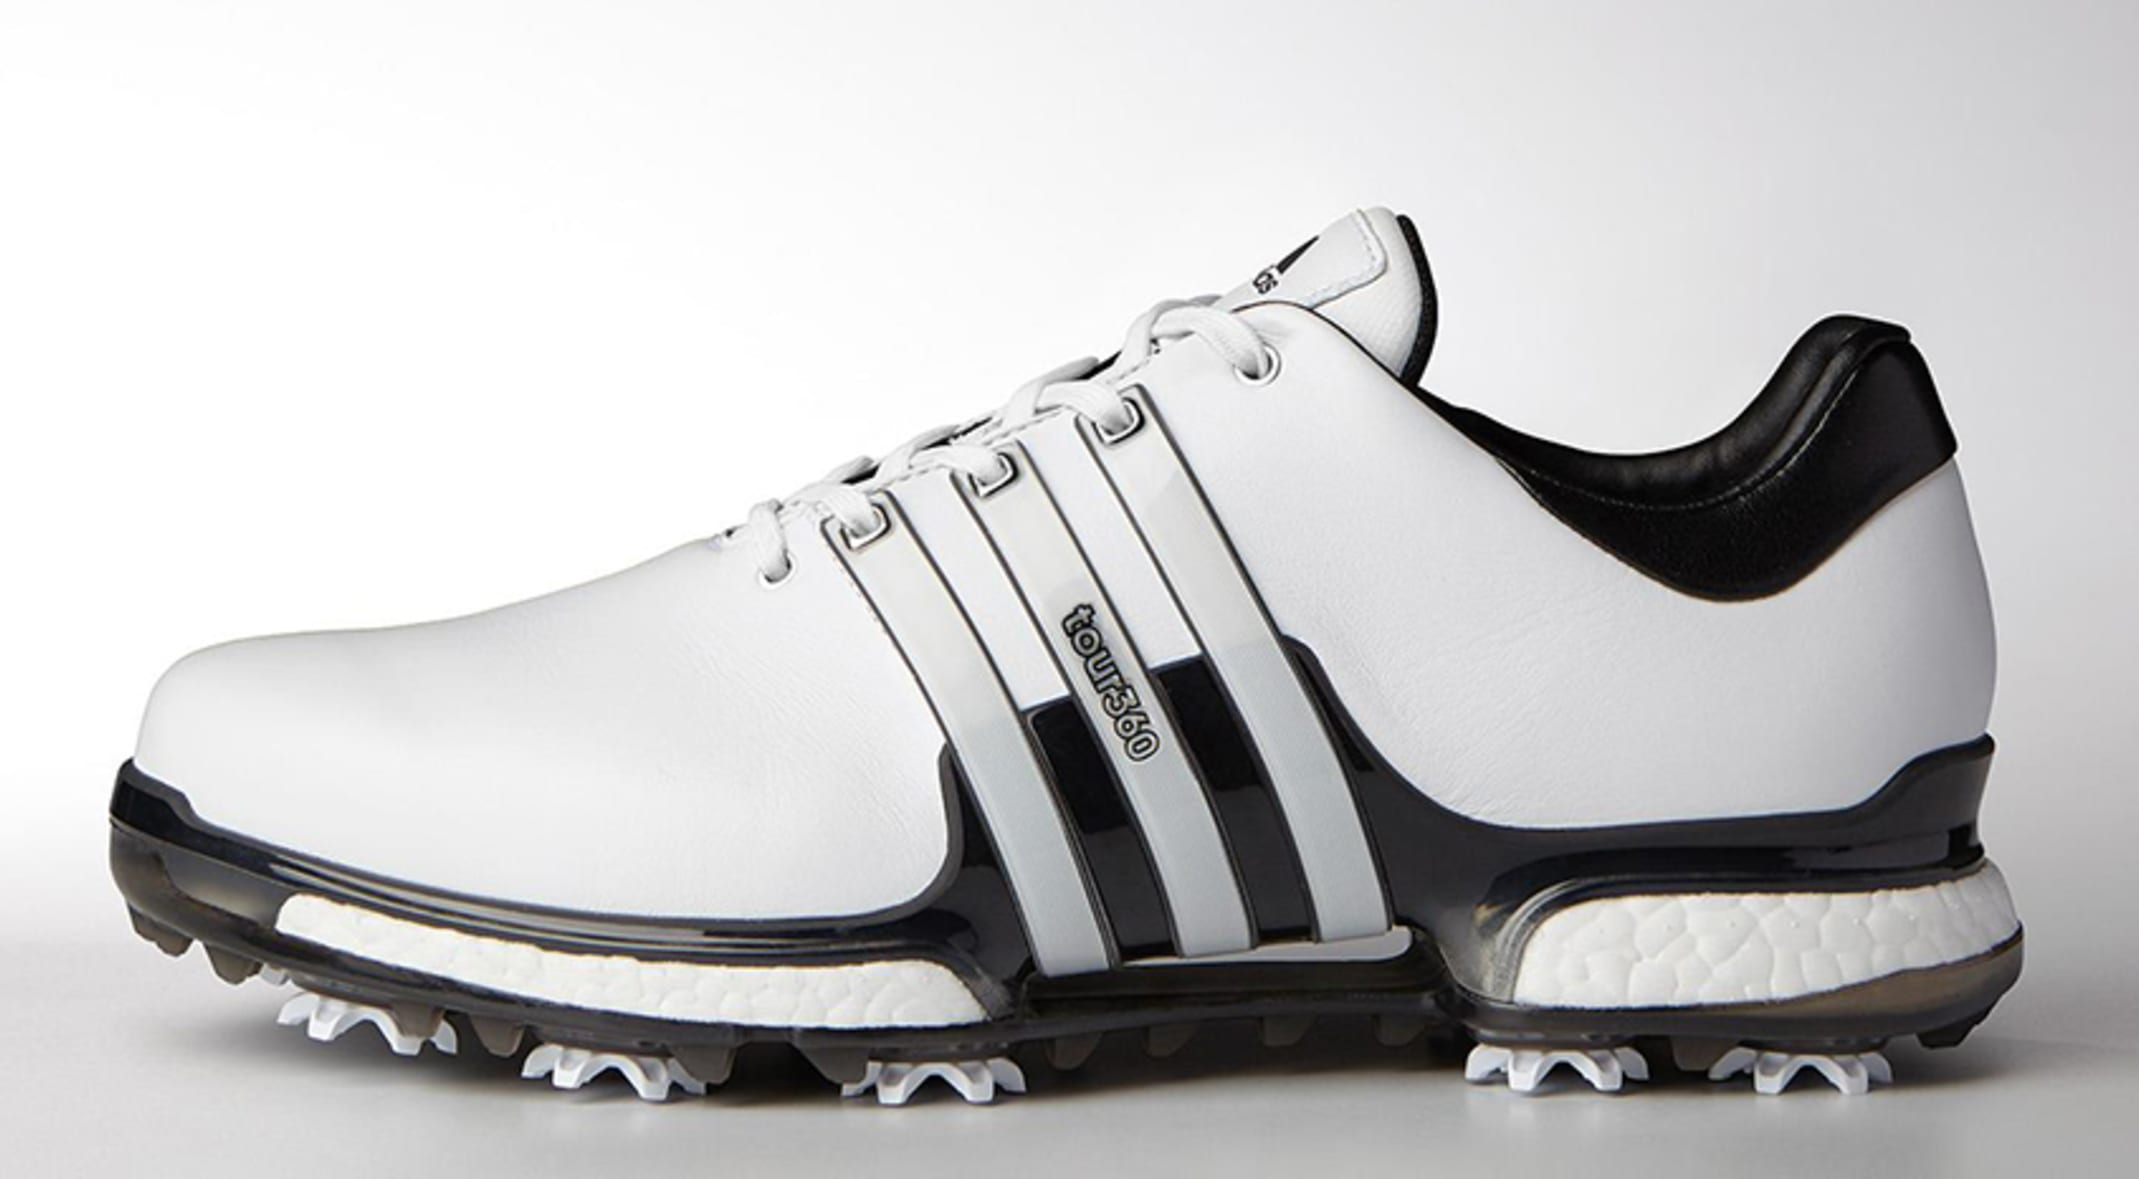 Dustin Johnson wore the adidas TOUR360 shoes during his FedExCup Playoff  victory at THE NORTHERN TRUST 228dce13b